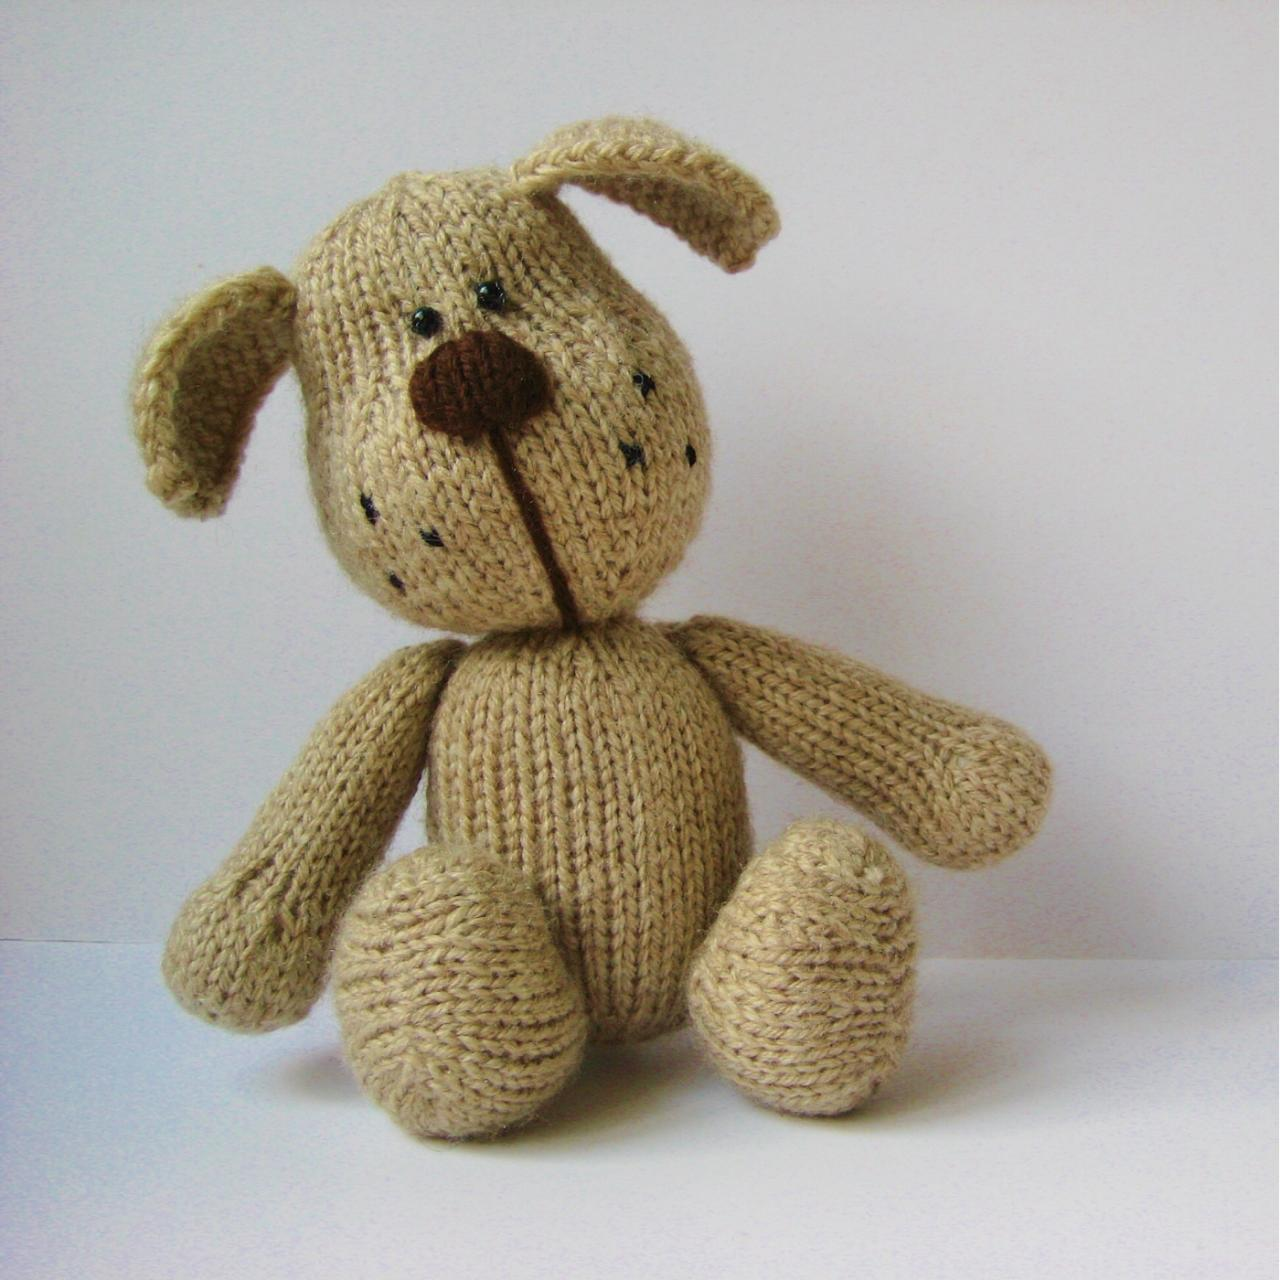 Knitting Patterns For A Dog : Bernie The Dog Toy Knitting Pattern on Luulla